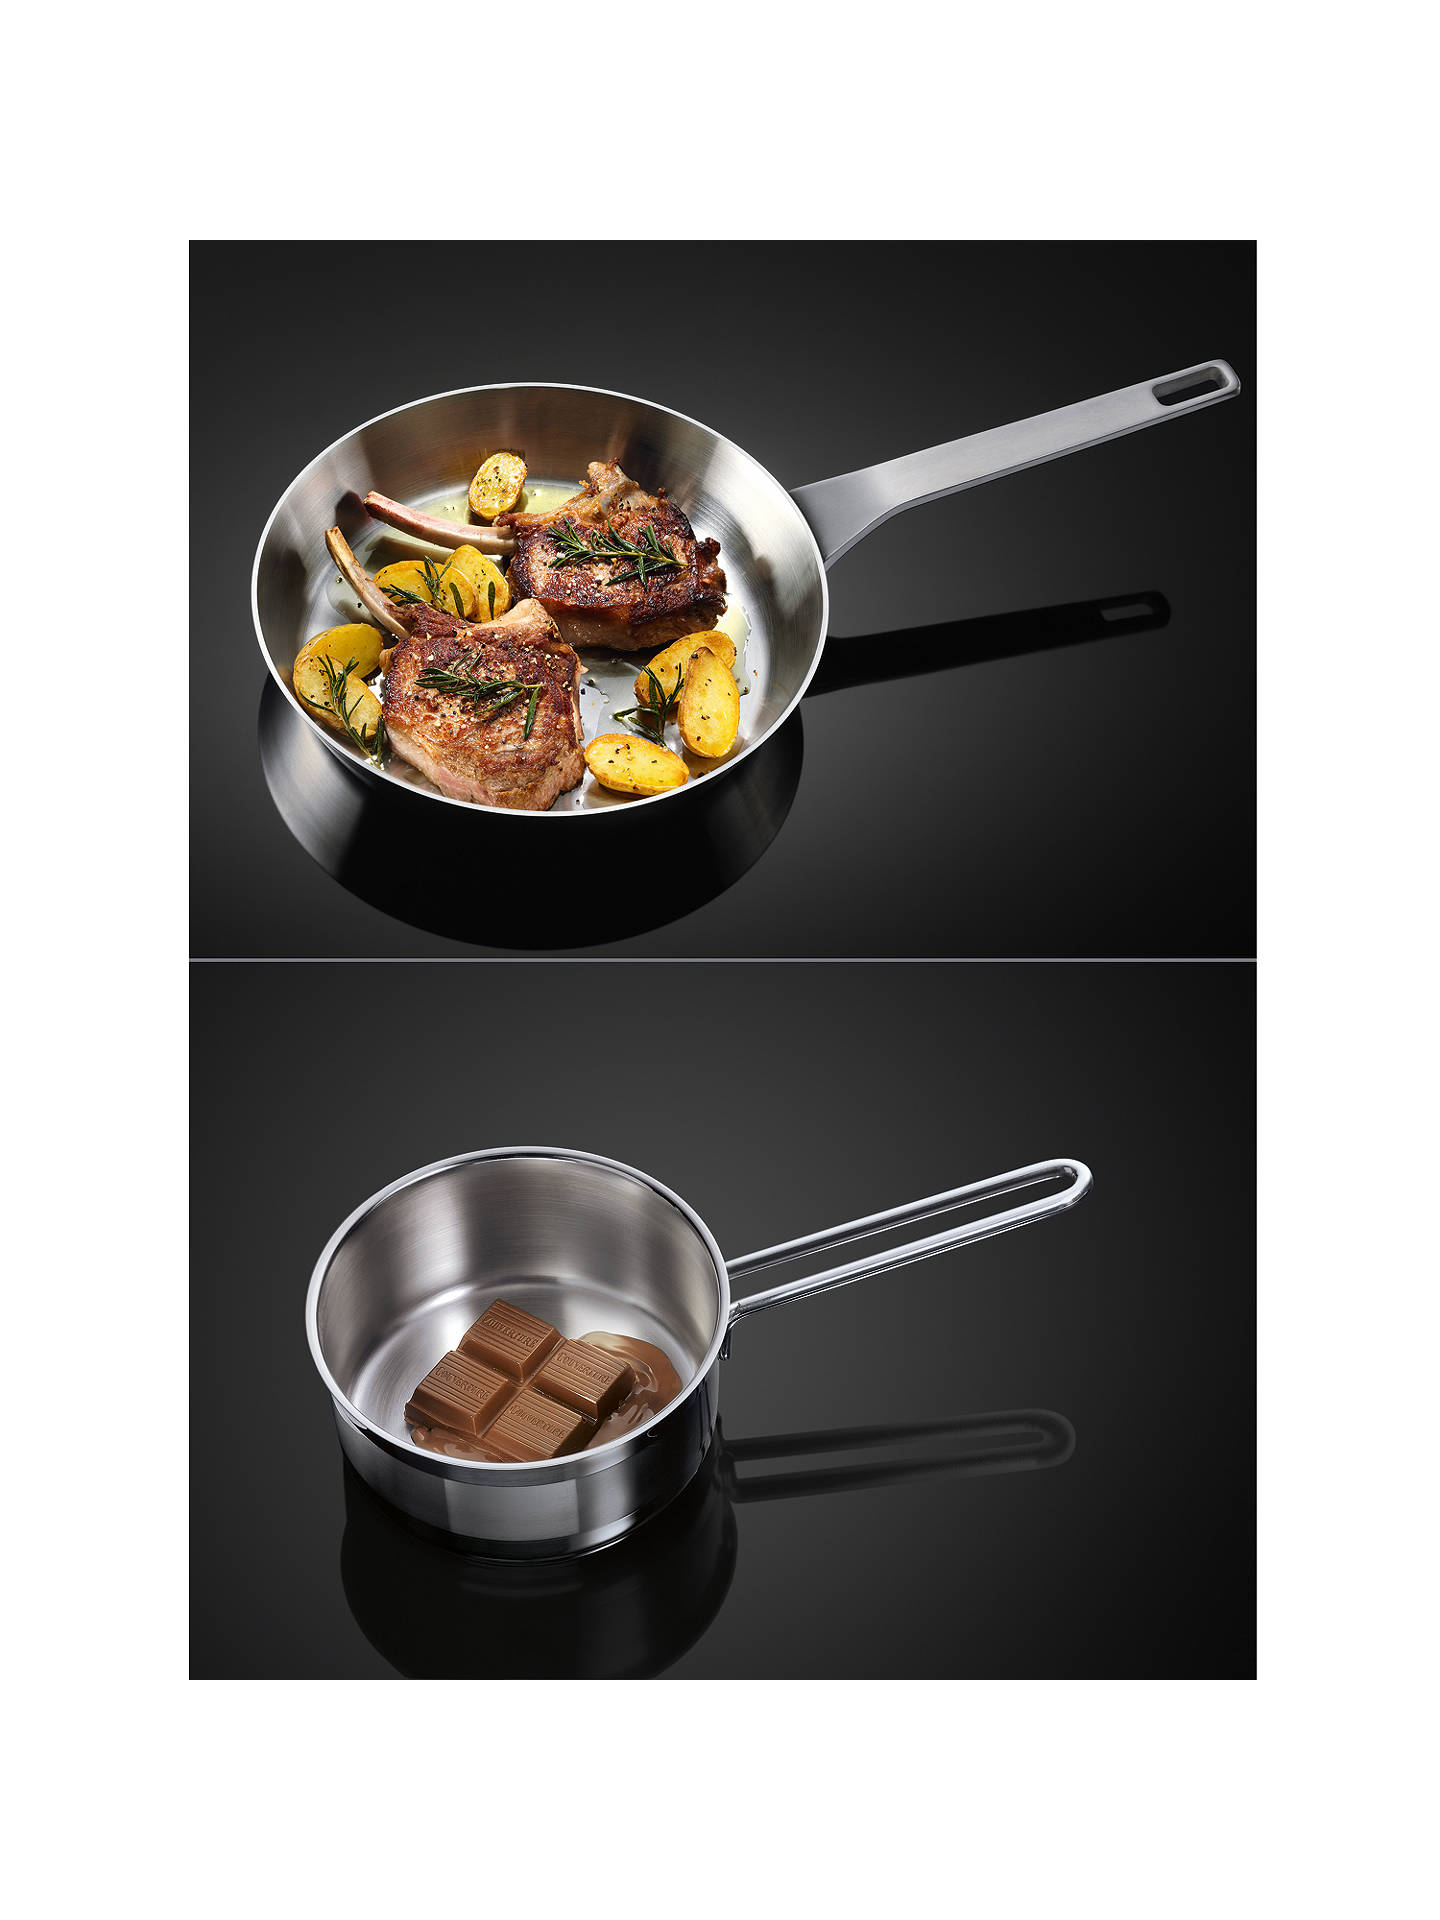 BuyAEG HK604200IB Electric Touch Control Induction Hob, Black Online at johnlewis.com